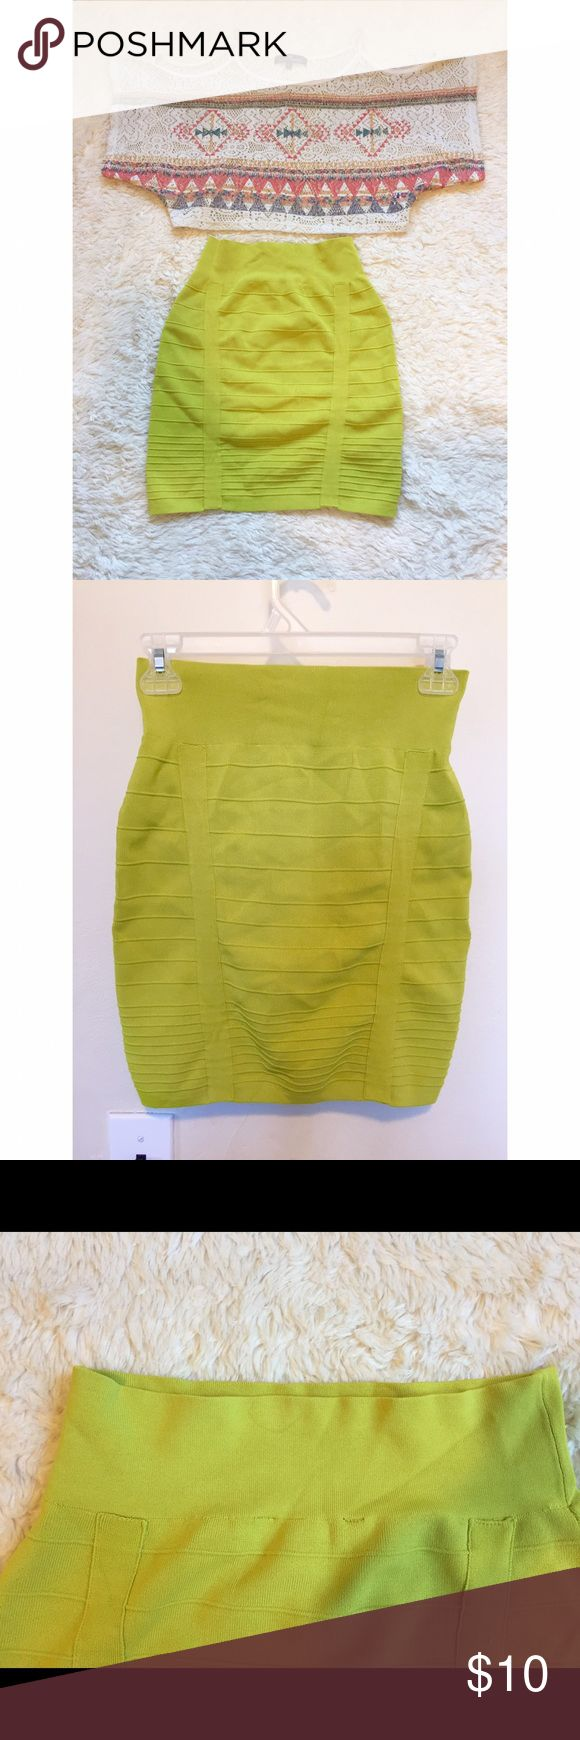 Ribbed Lime Green Pencil Skirt Green pencil skirt that is ribbed and lined  for a flattering fit. Only worn twice, but does have a small stain on the top of the back of the skirt in Picture 3. The material is very thick and stretchy! In great condition, no rips. Size S. Crop top is for sale in a separate post. Rock & Republic Skirts Pencil